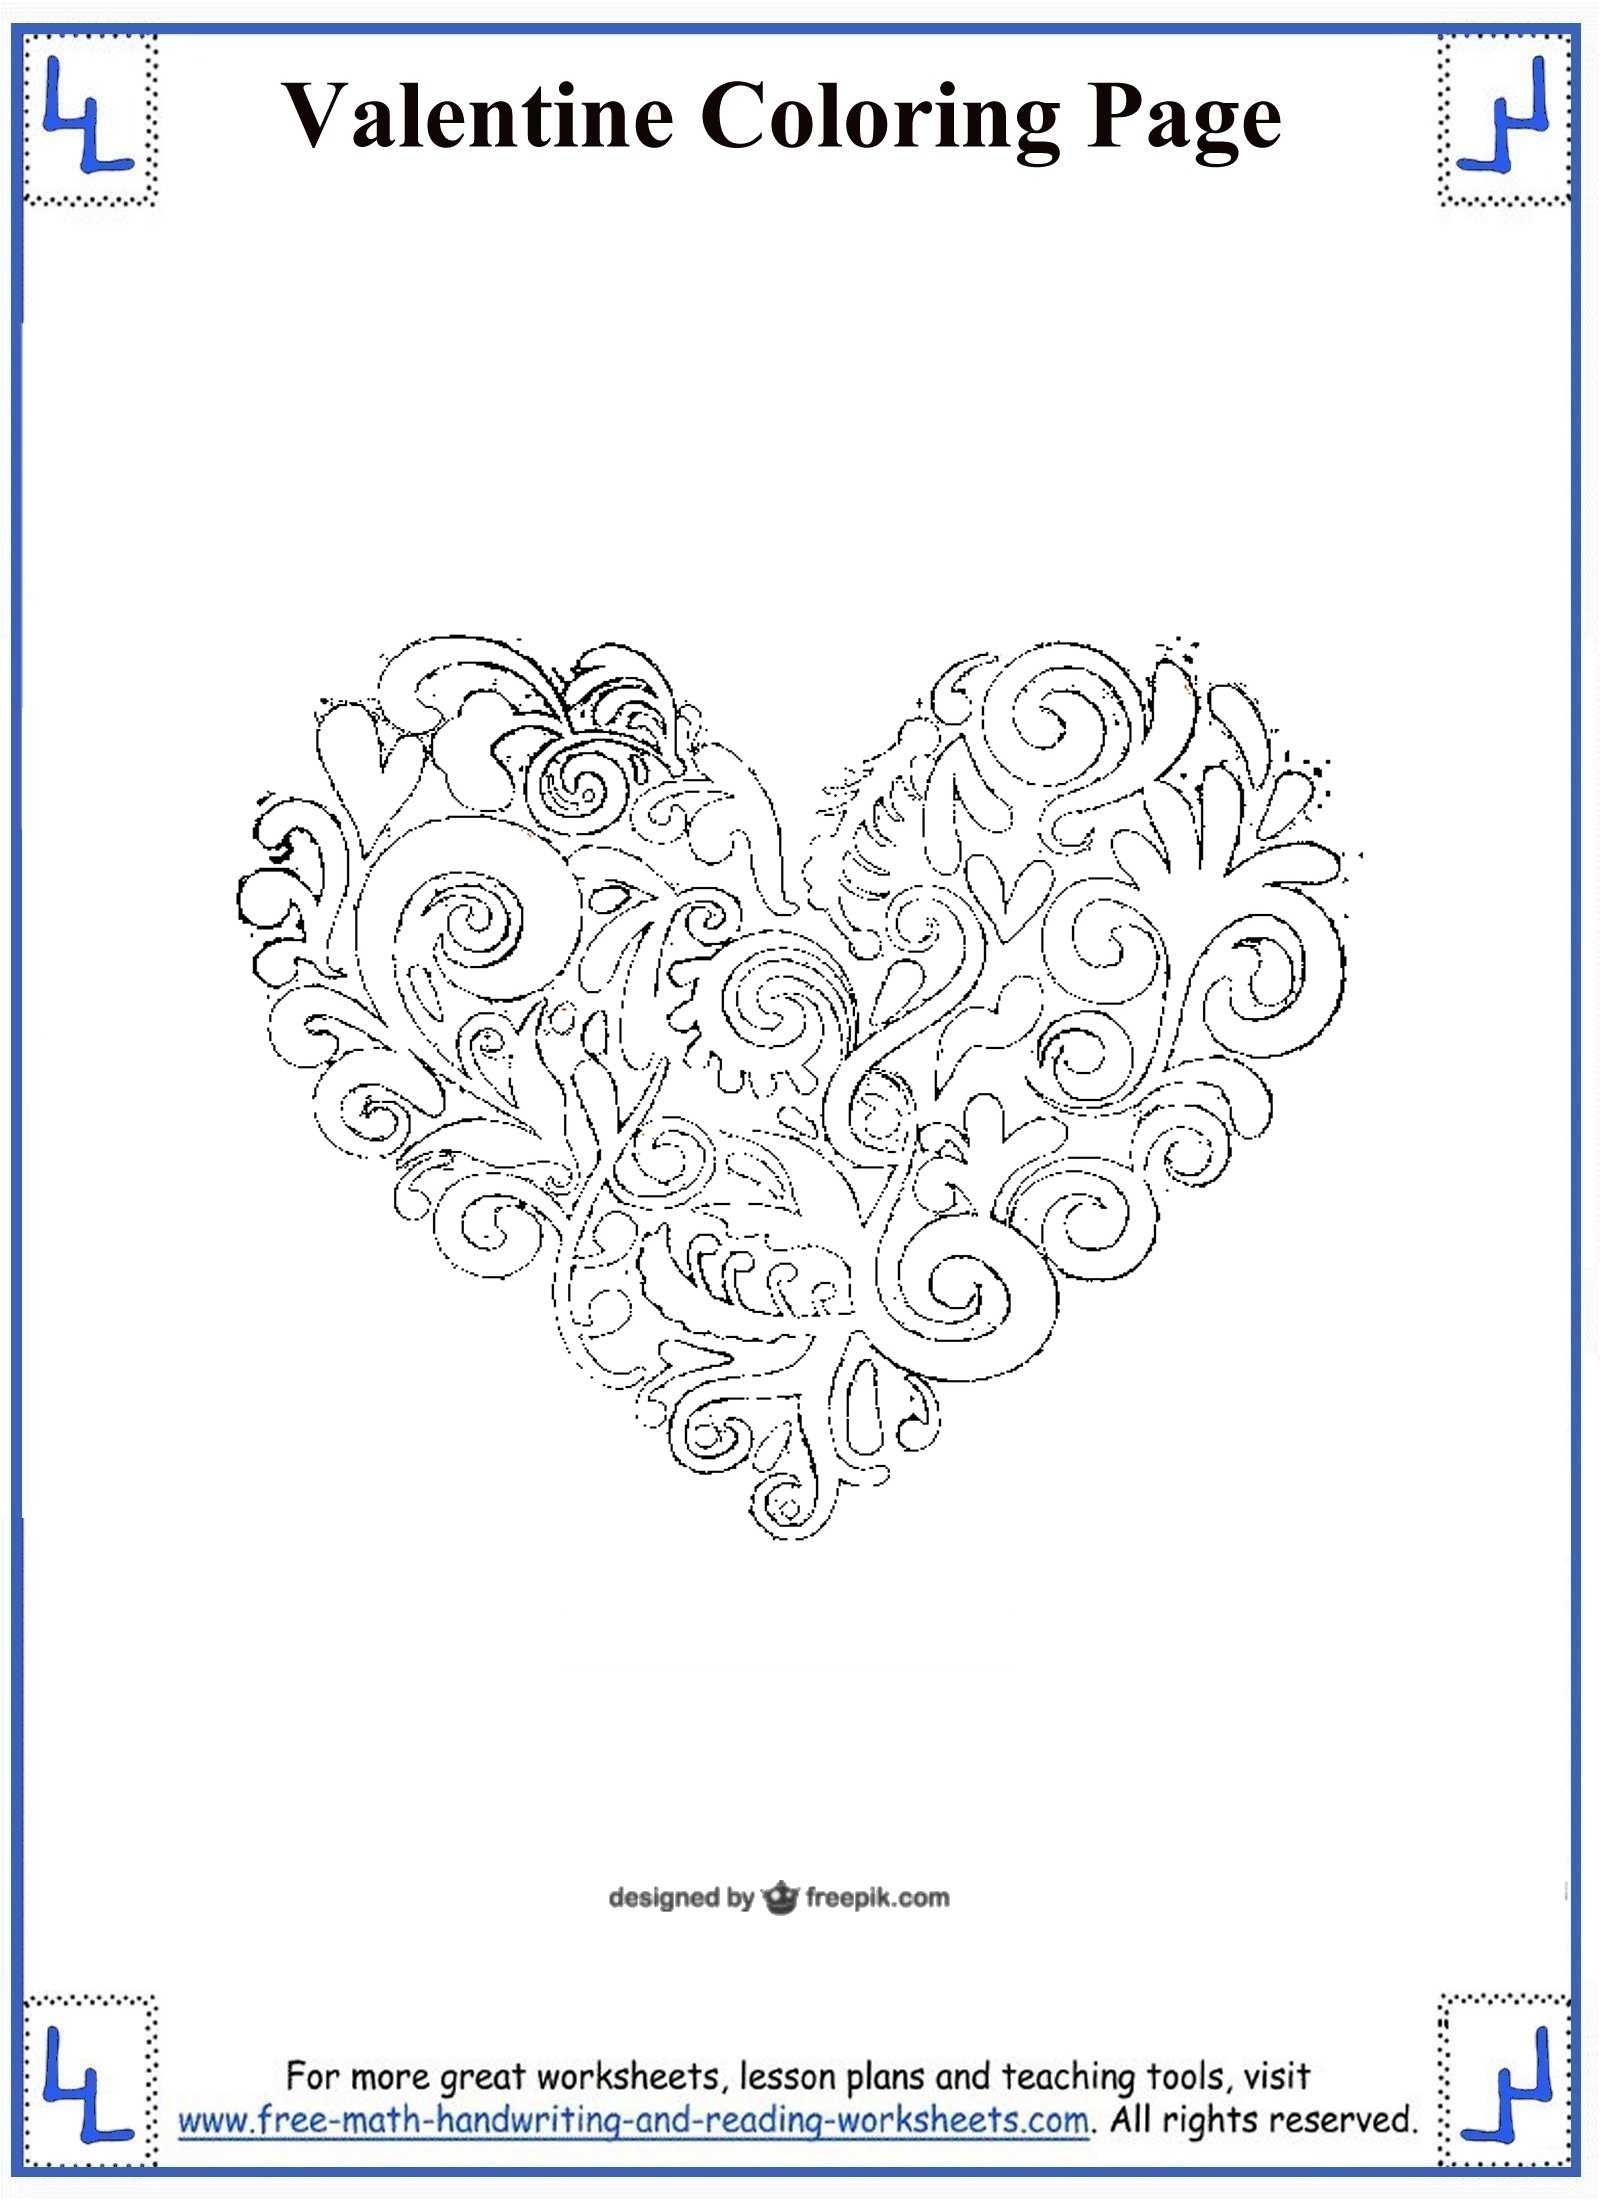 Fun Math Worksheets for Middle School Along with Additions Additions Valentine Addition Worksheets Day Coloring